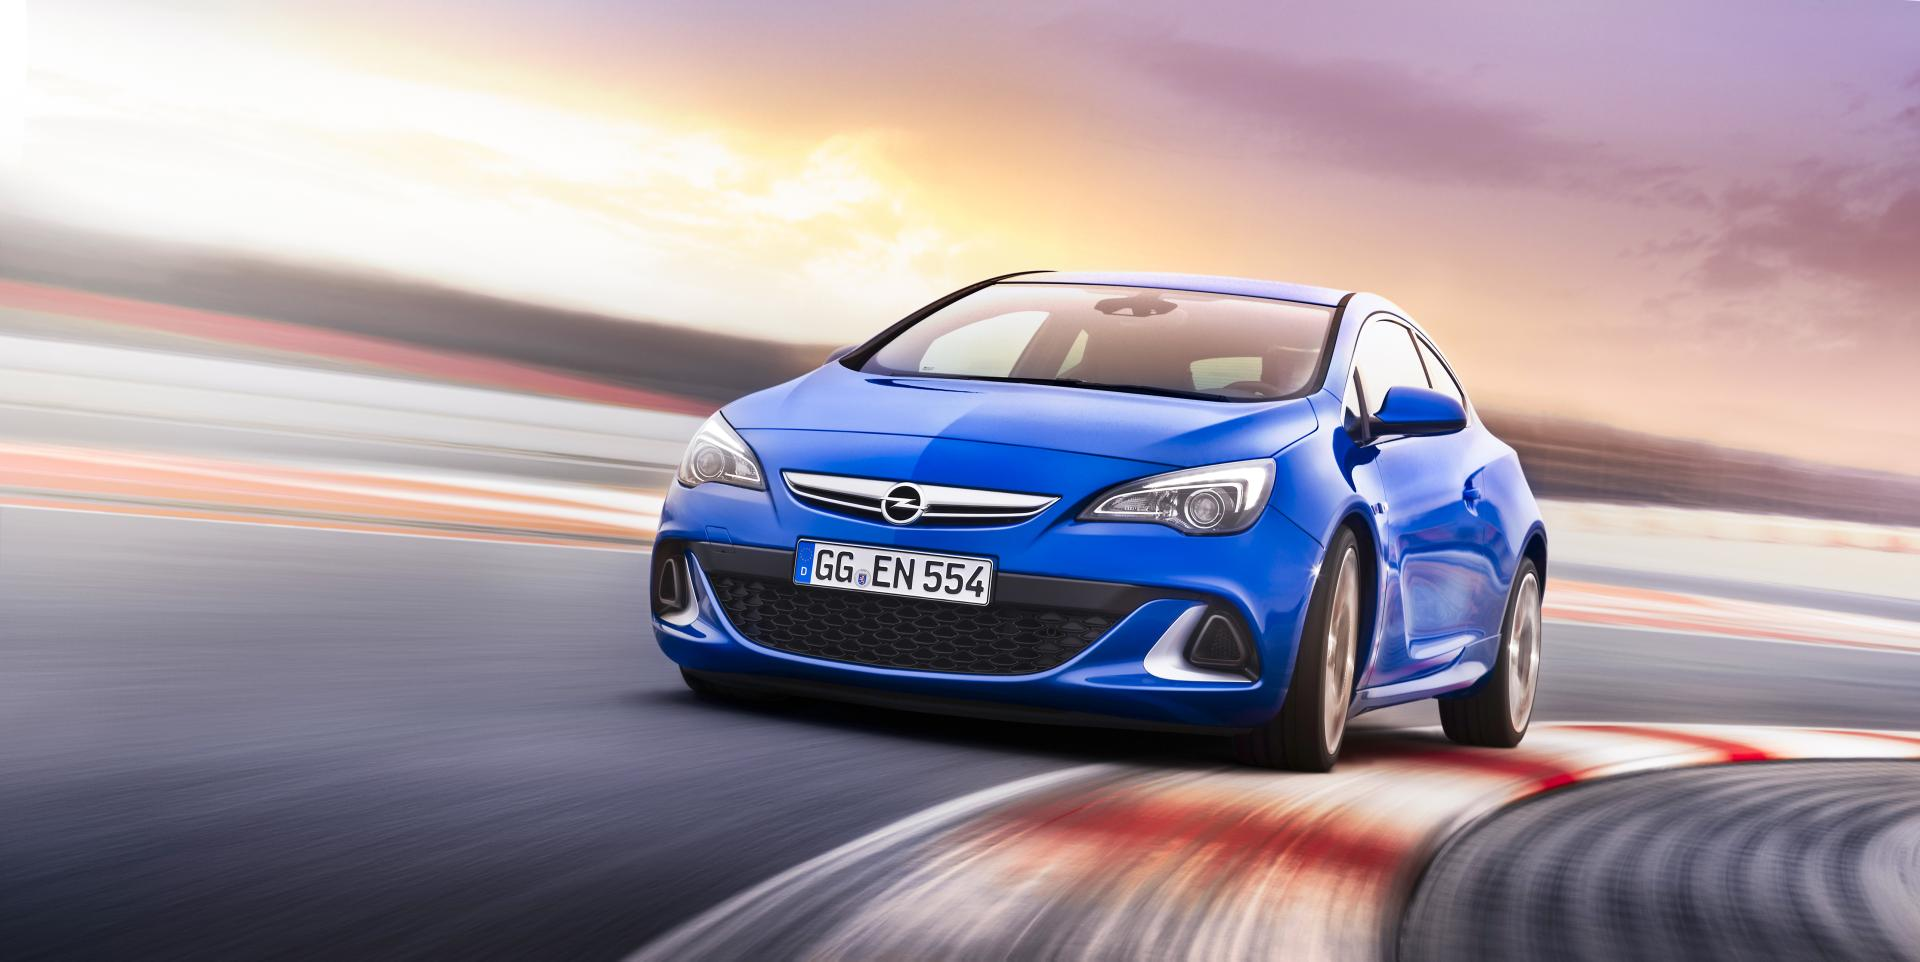 2013 Opel Astra Opc Wallpaper And Image Gallery Com